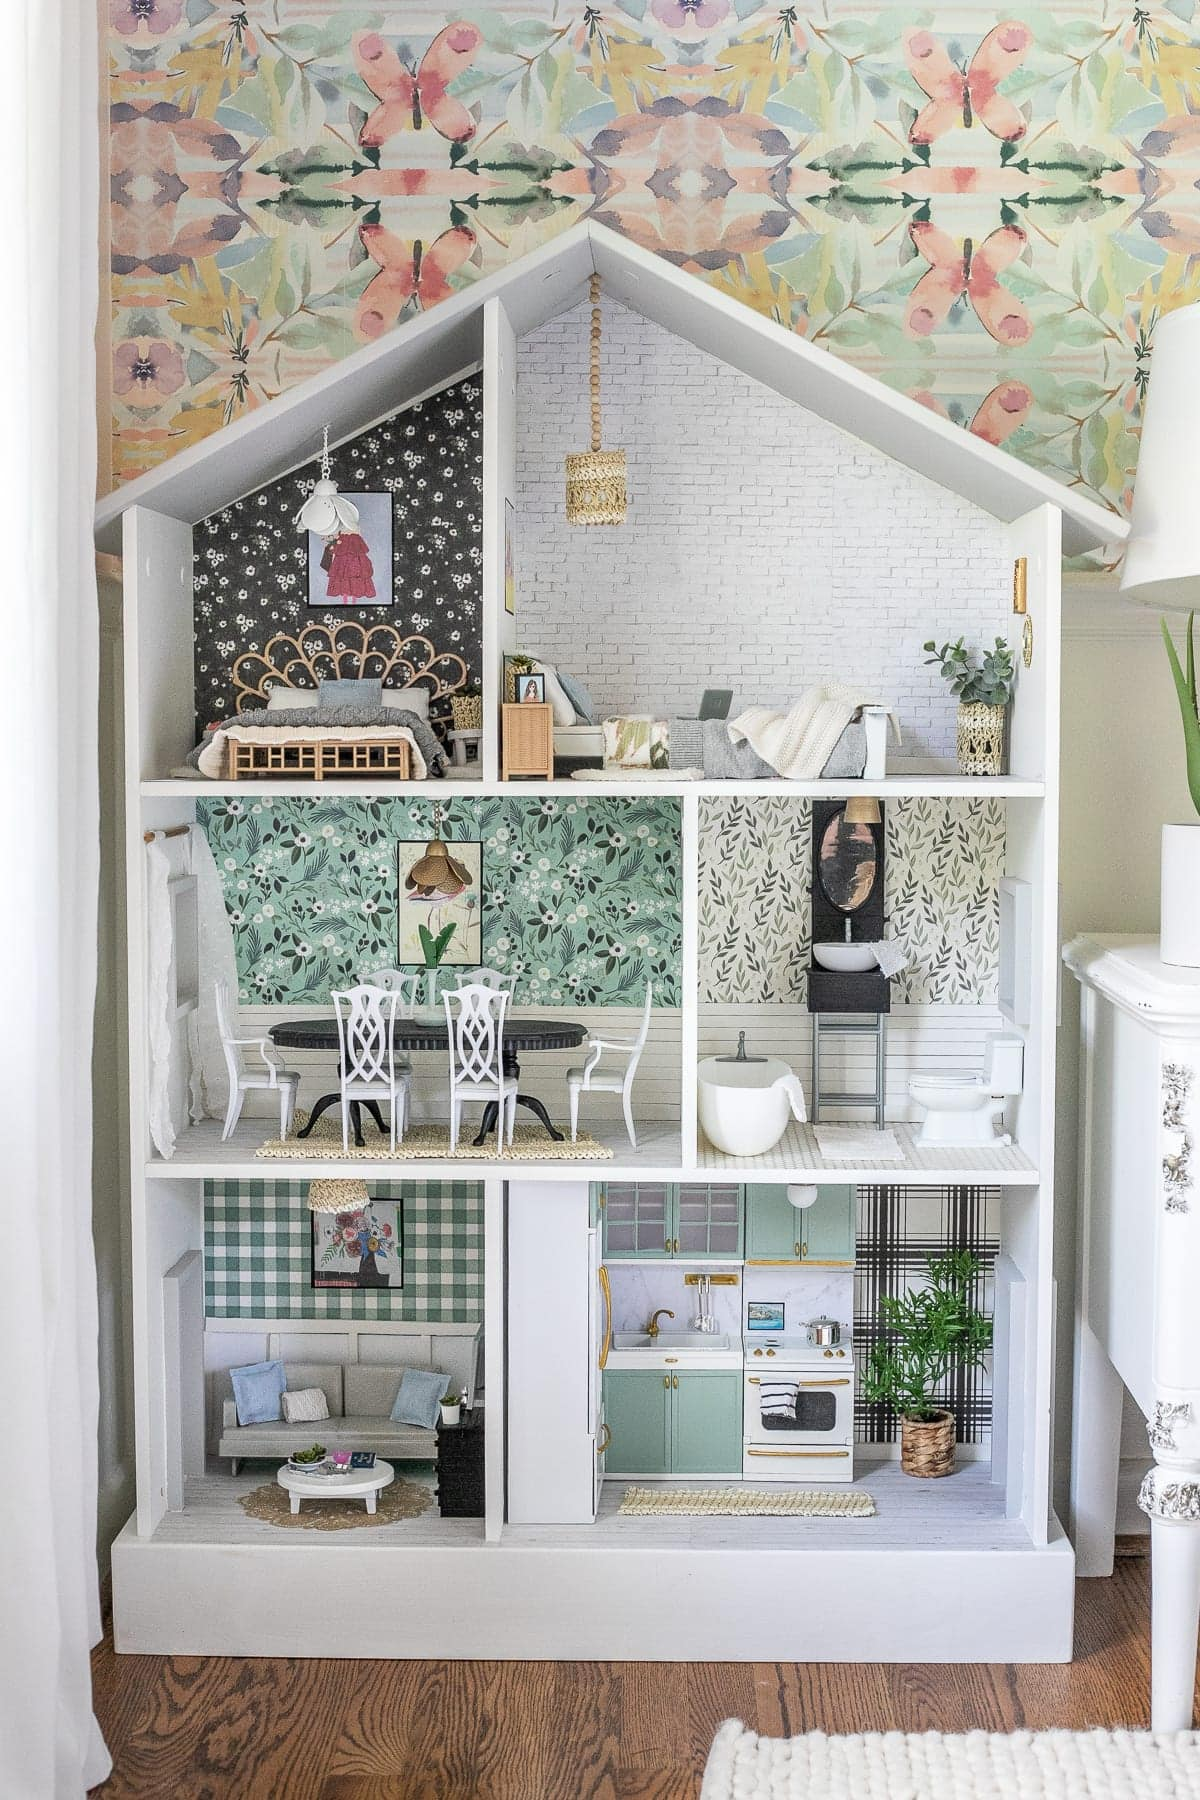 DIY dollhouse using items from around the house